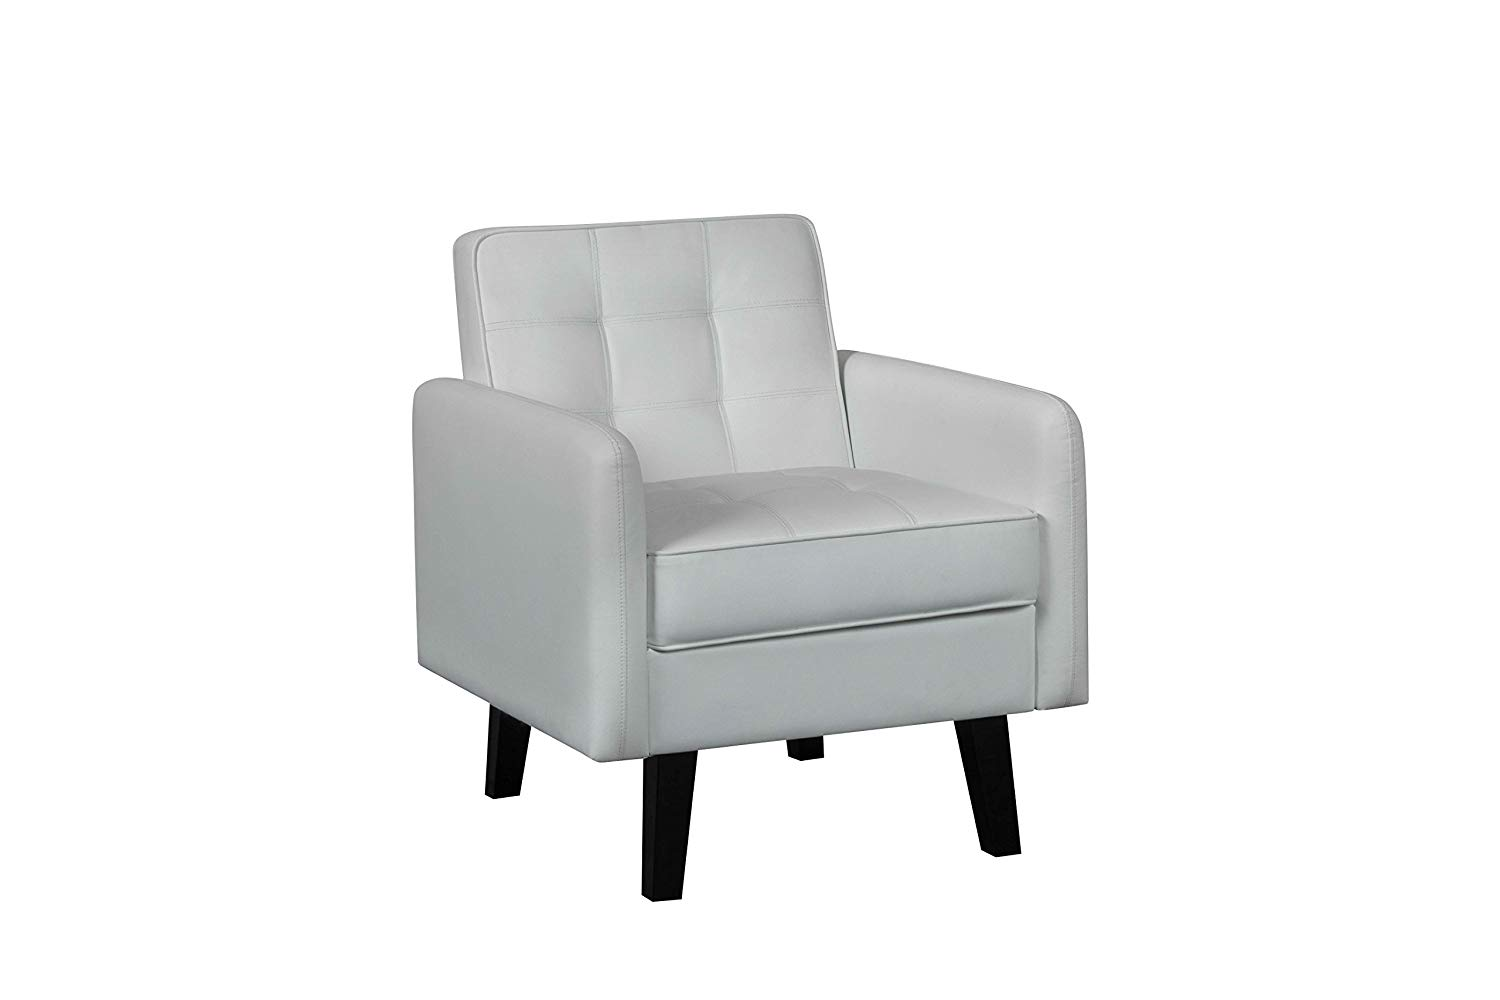 Container Furniture Direct C-134 Harper Collection Faux Leather Upholstered Mid Century Modern Accent Chair, Cream